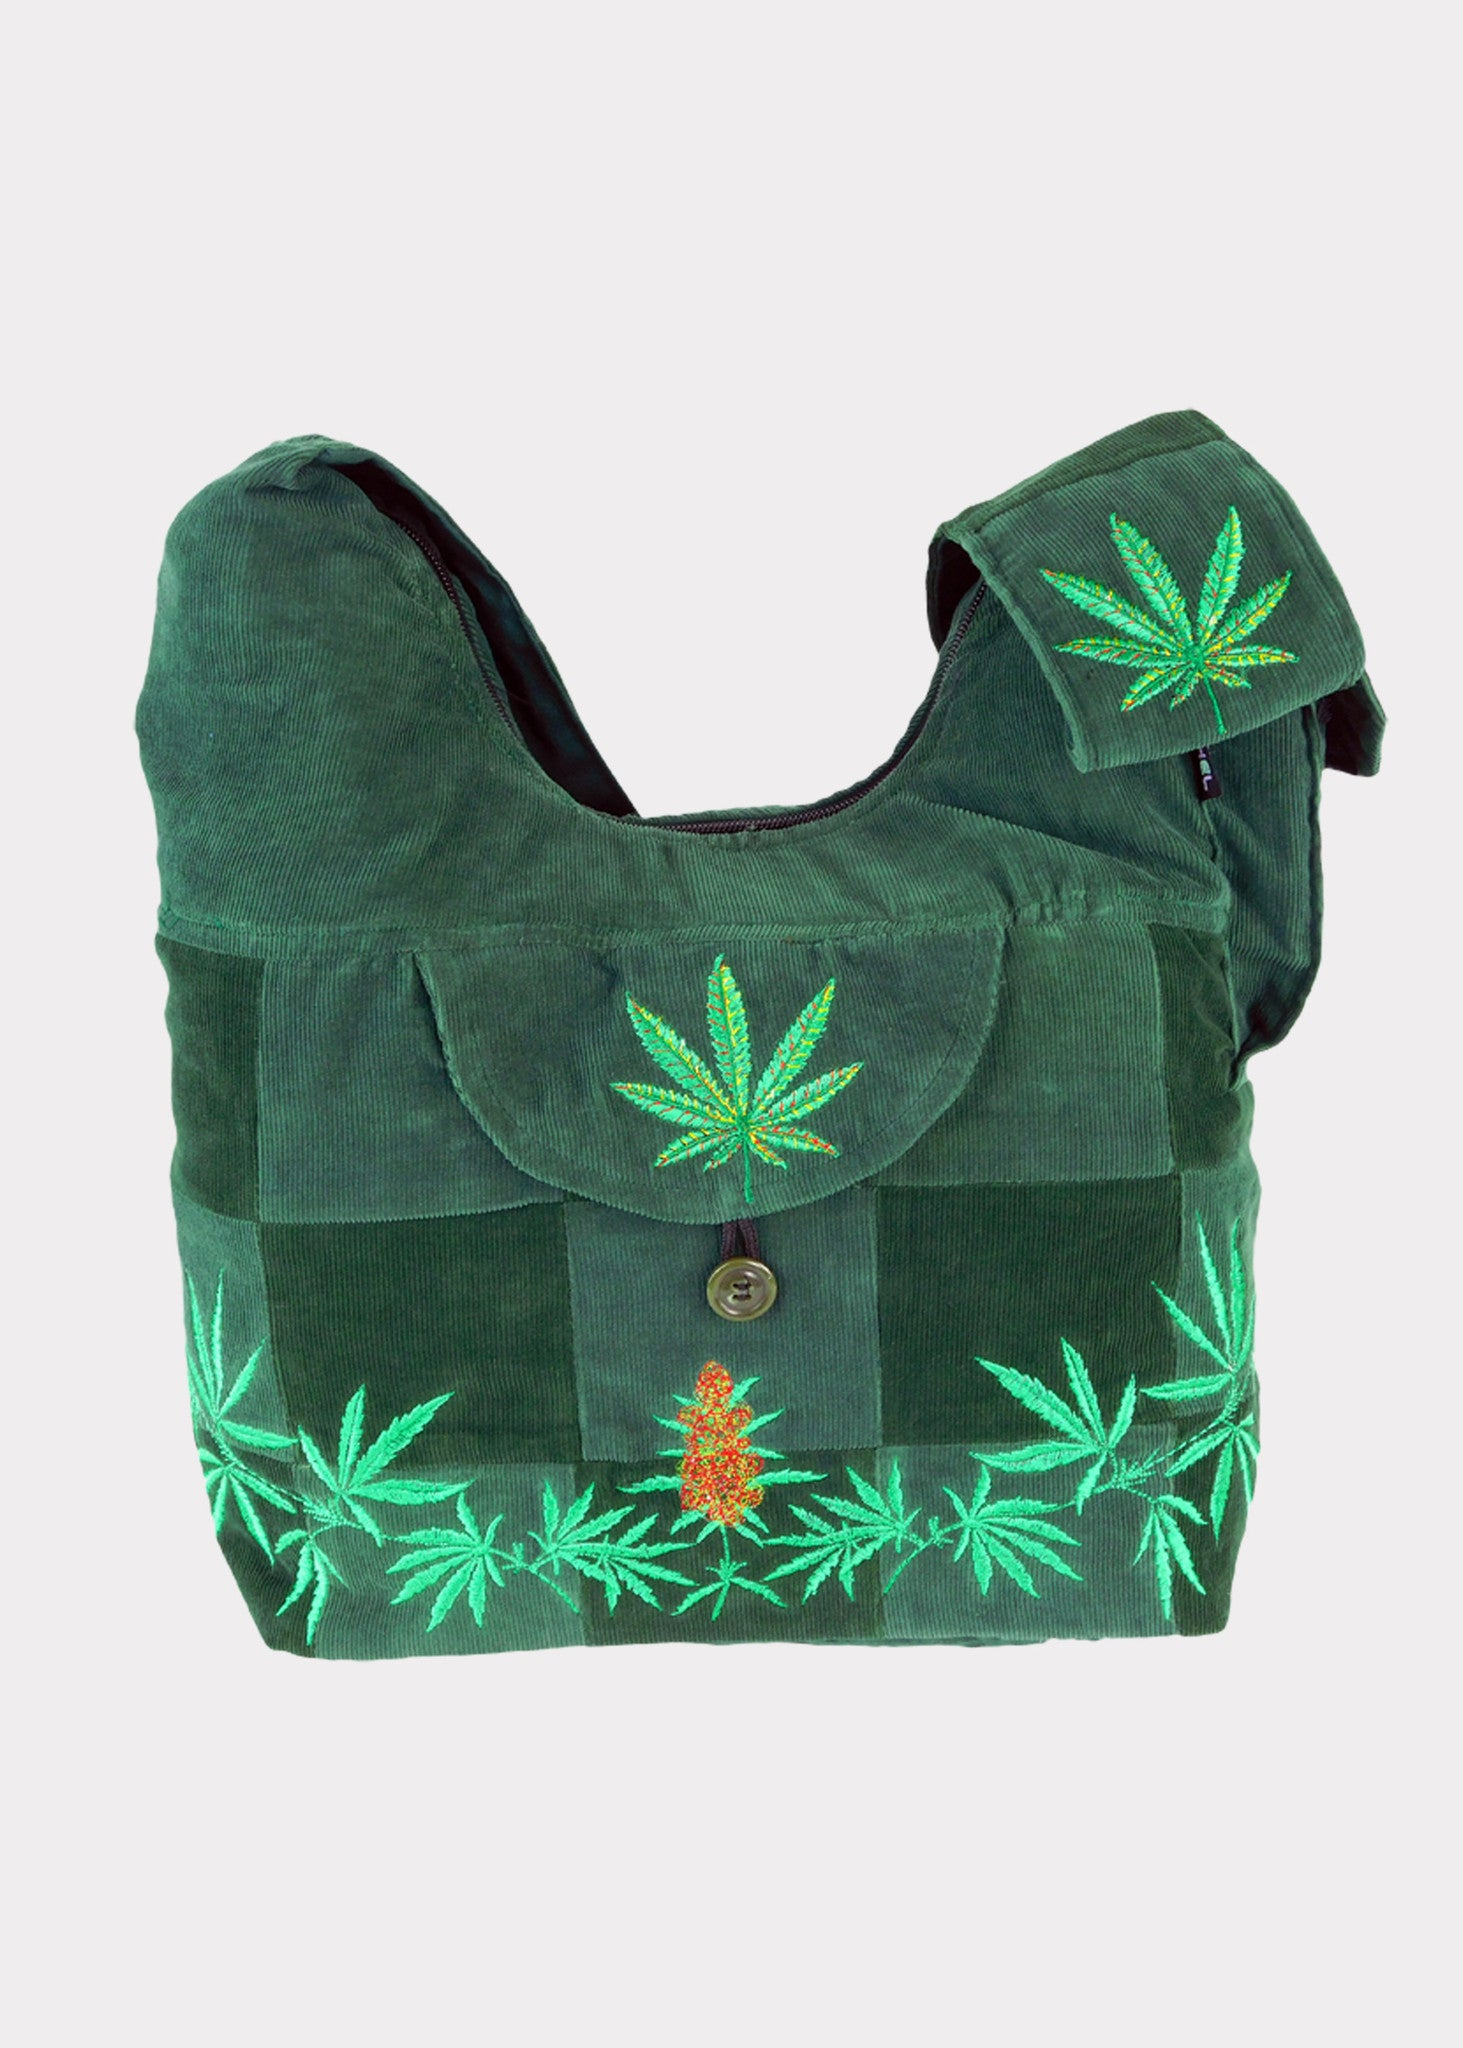 Patchwork Saddle Bag with Ganja leaf Embroidery